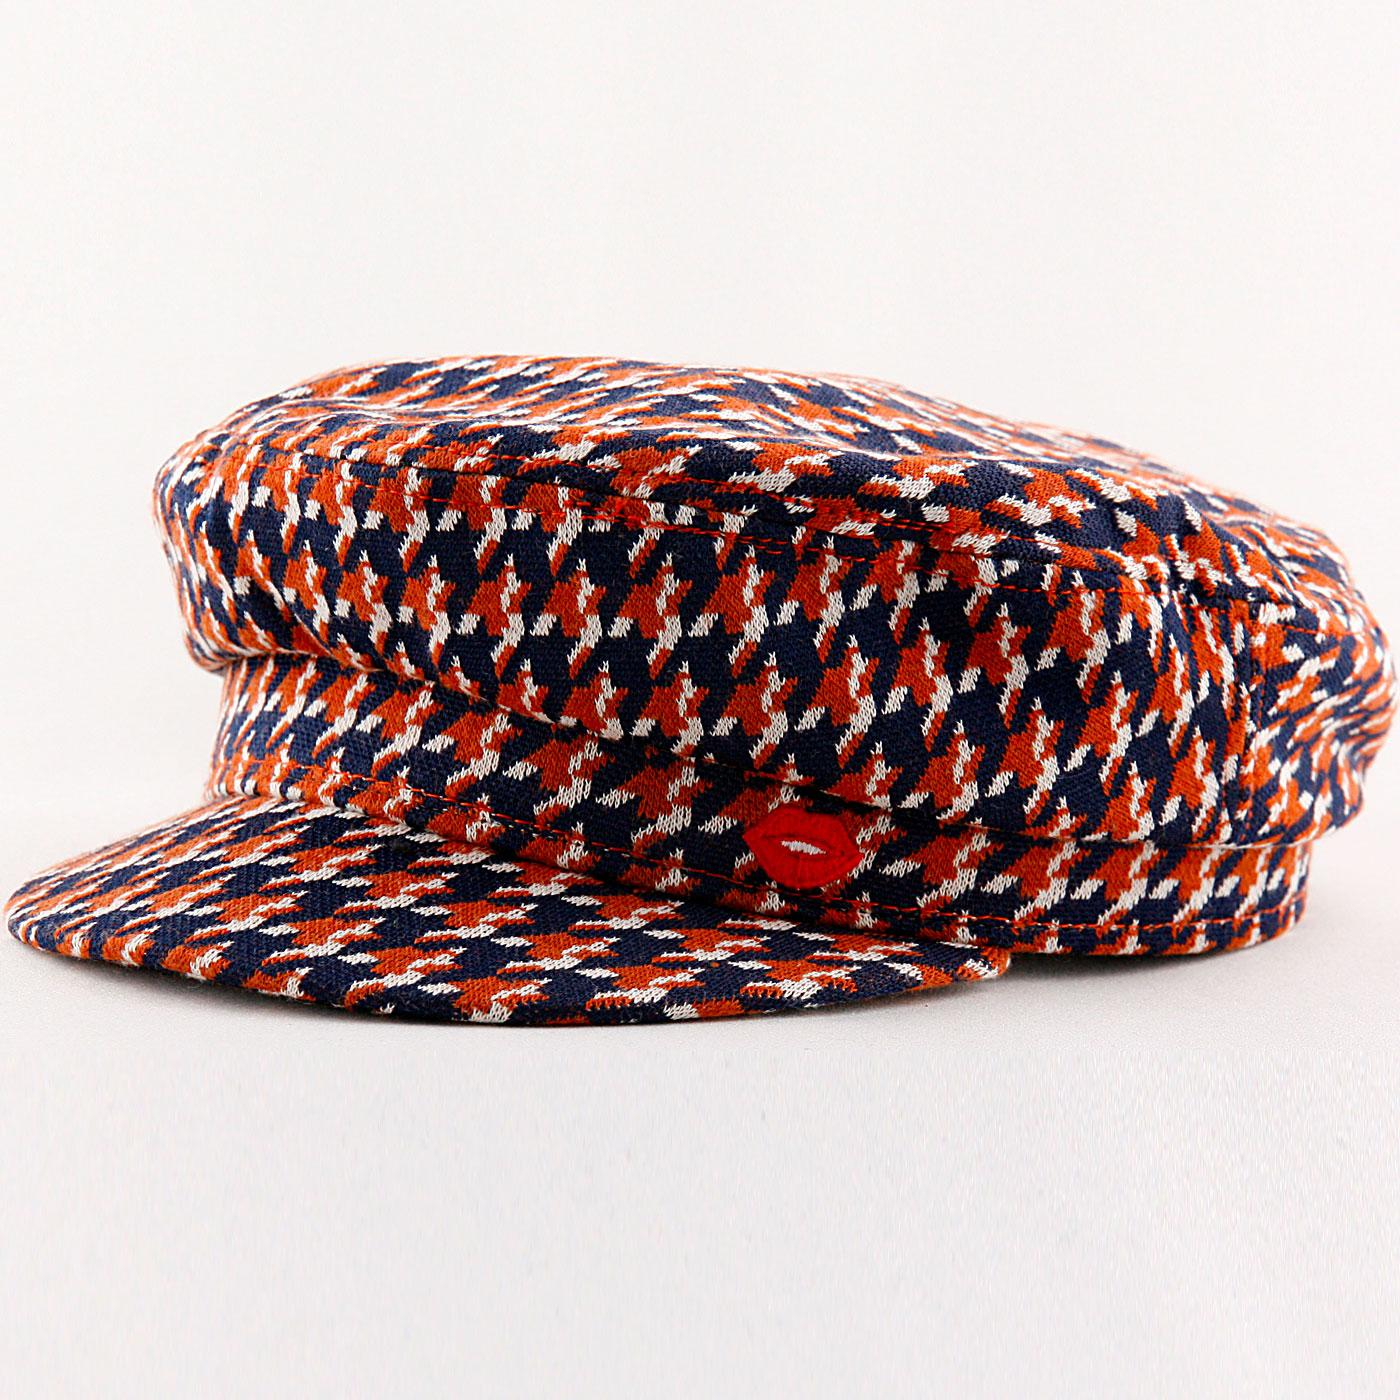 Think A Hat MADEMOISELLE YEYE Plaid Check Cap NAVY